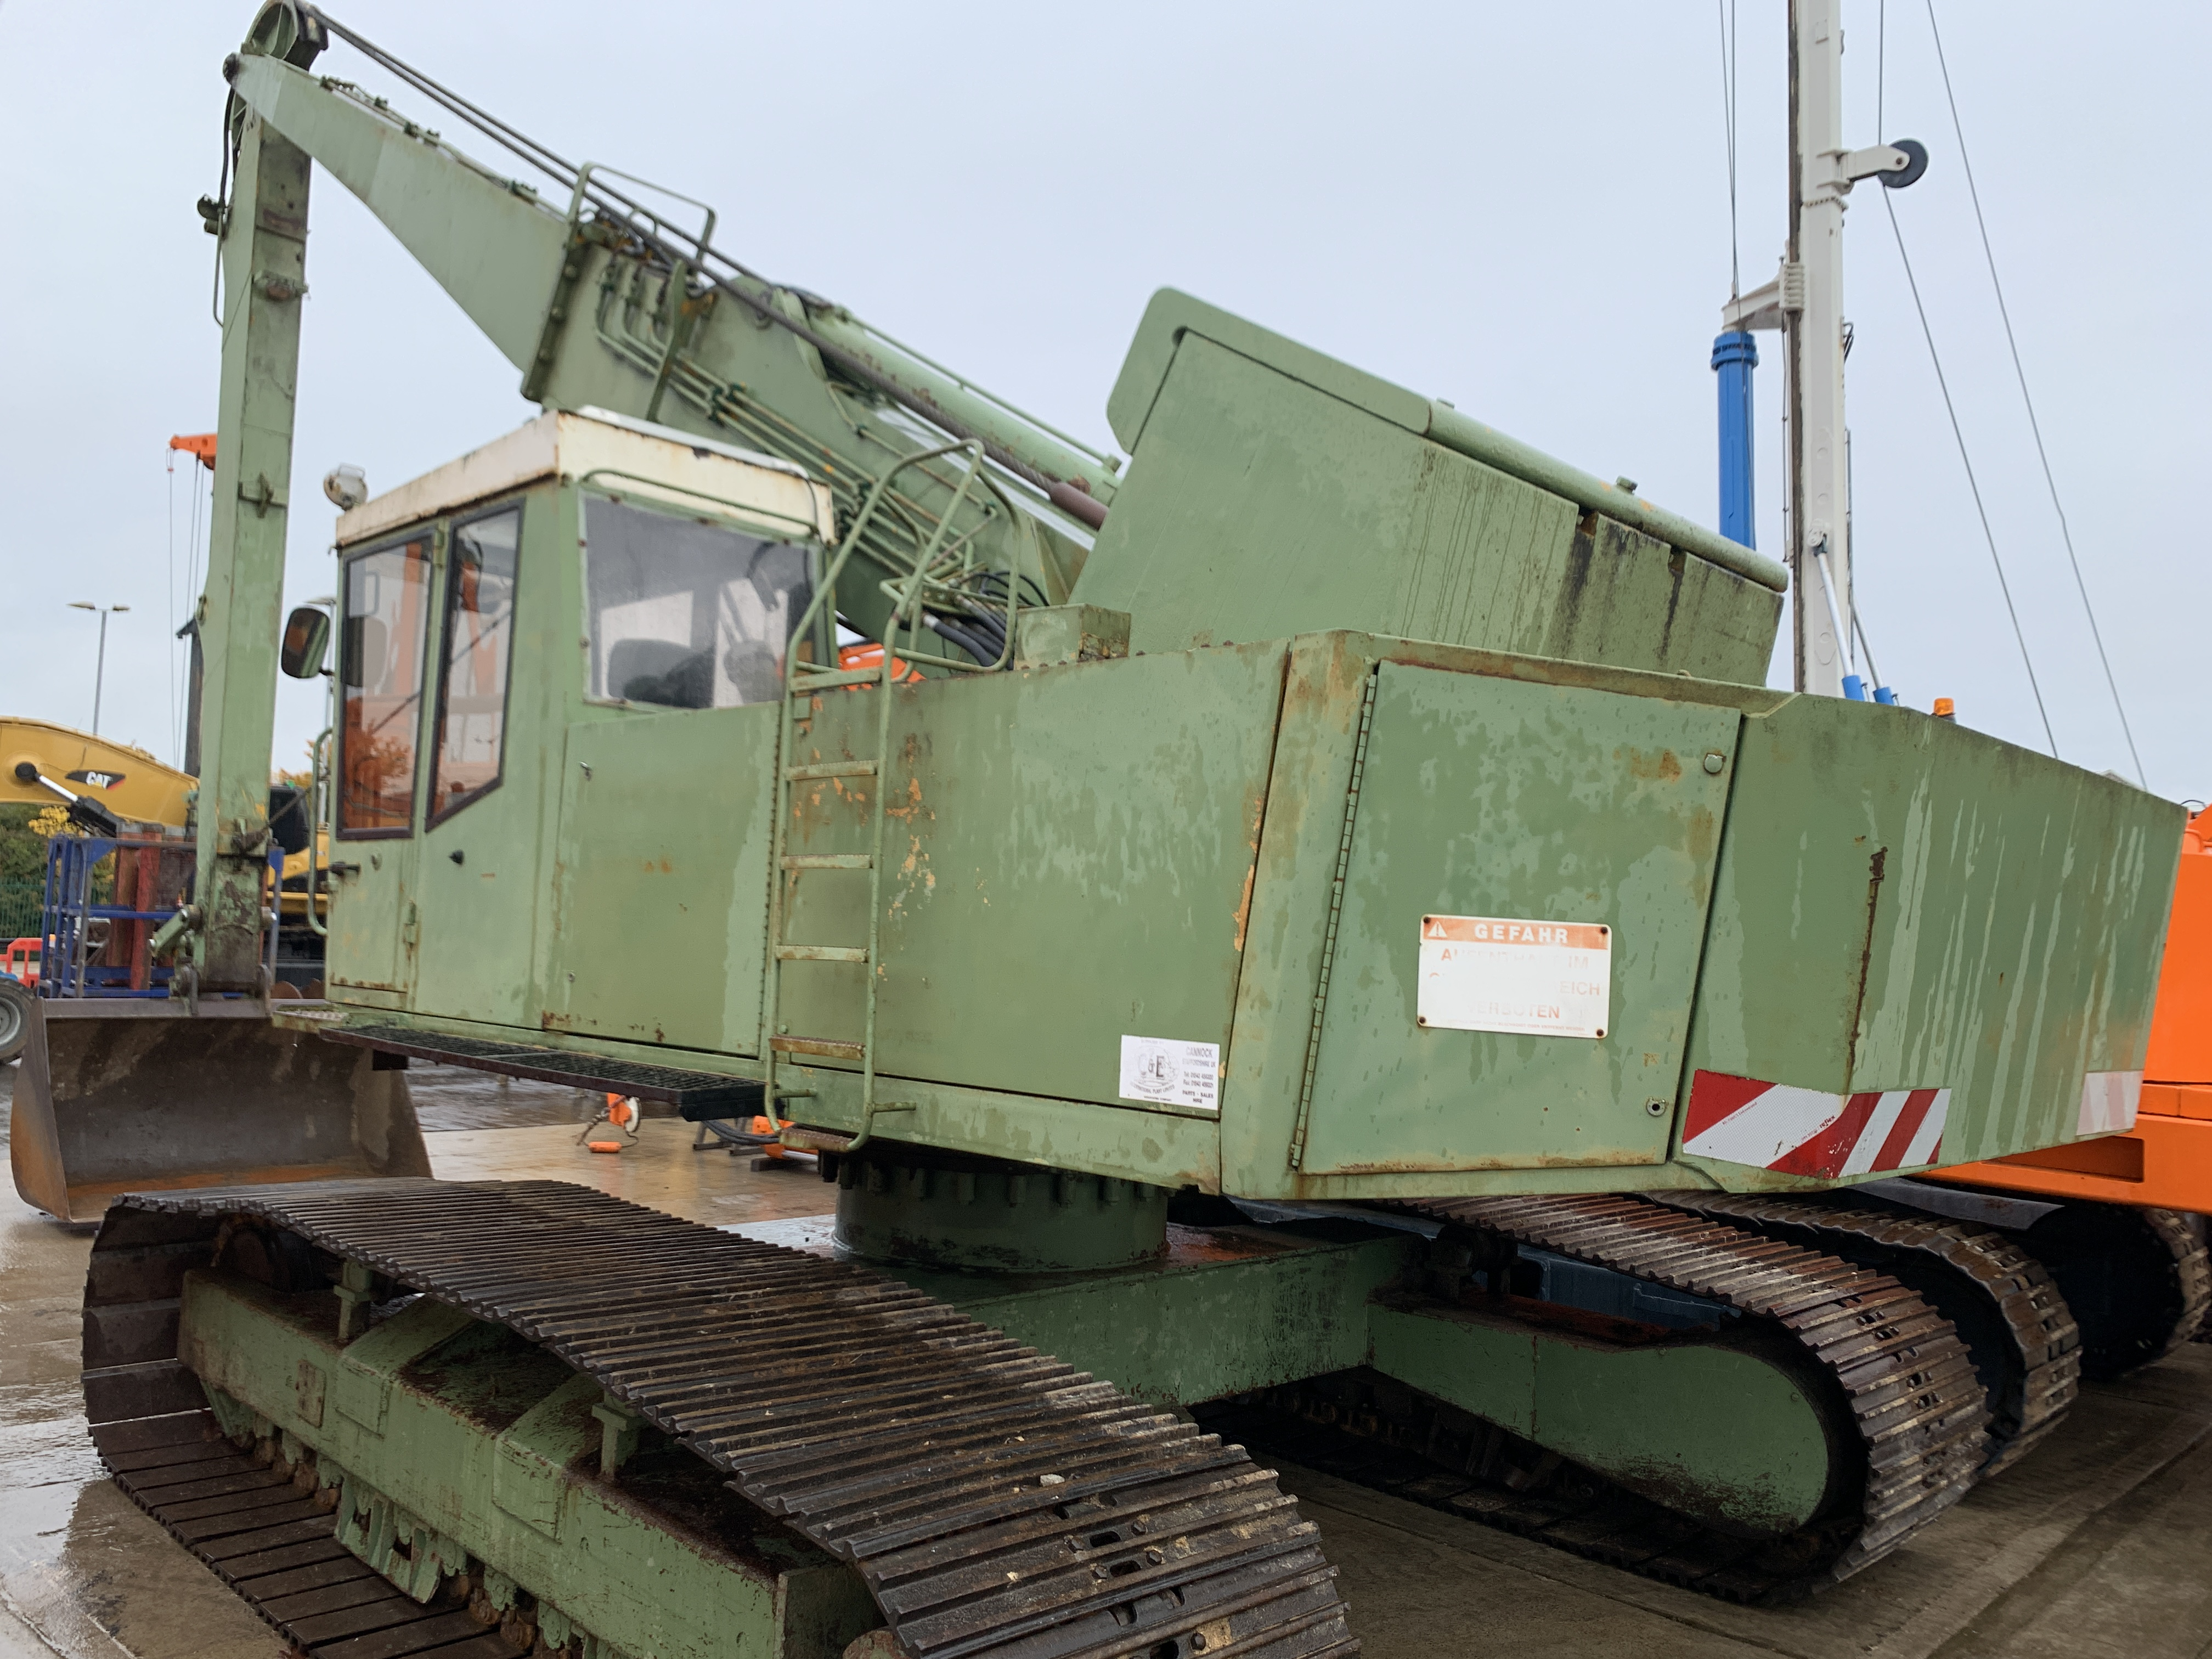 Used Priestman / RB VC20/15 hydraulic excavator for sale